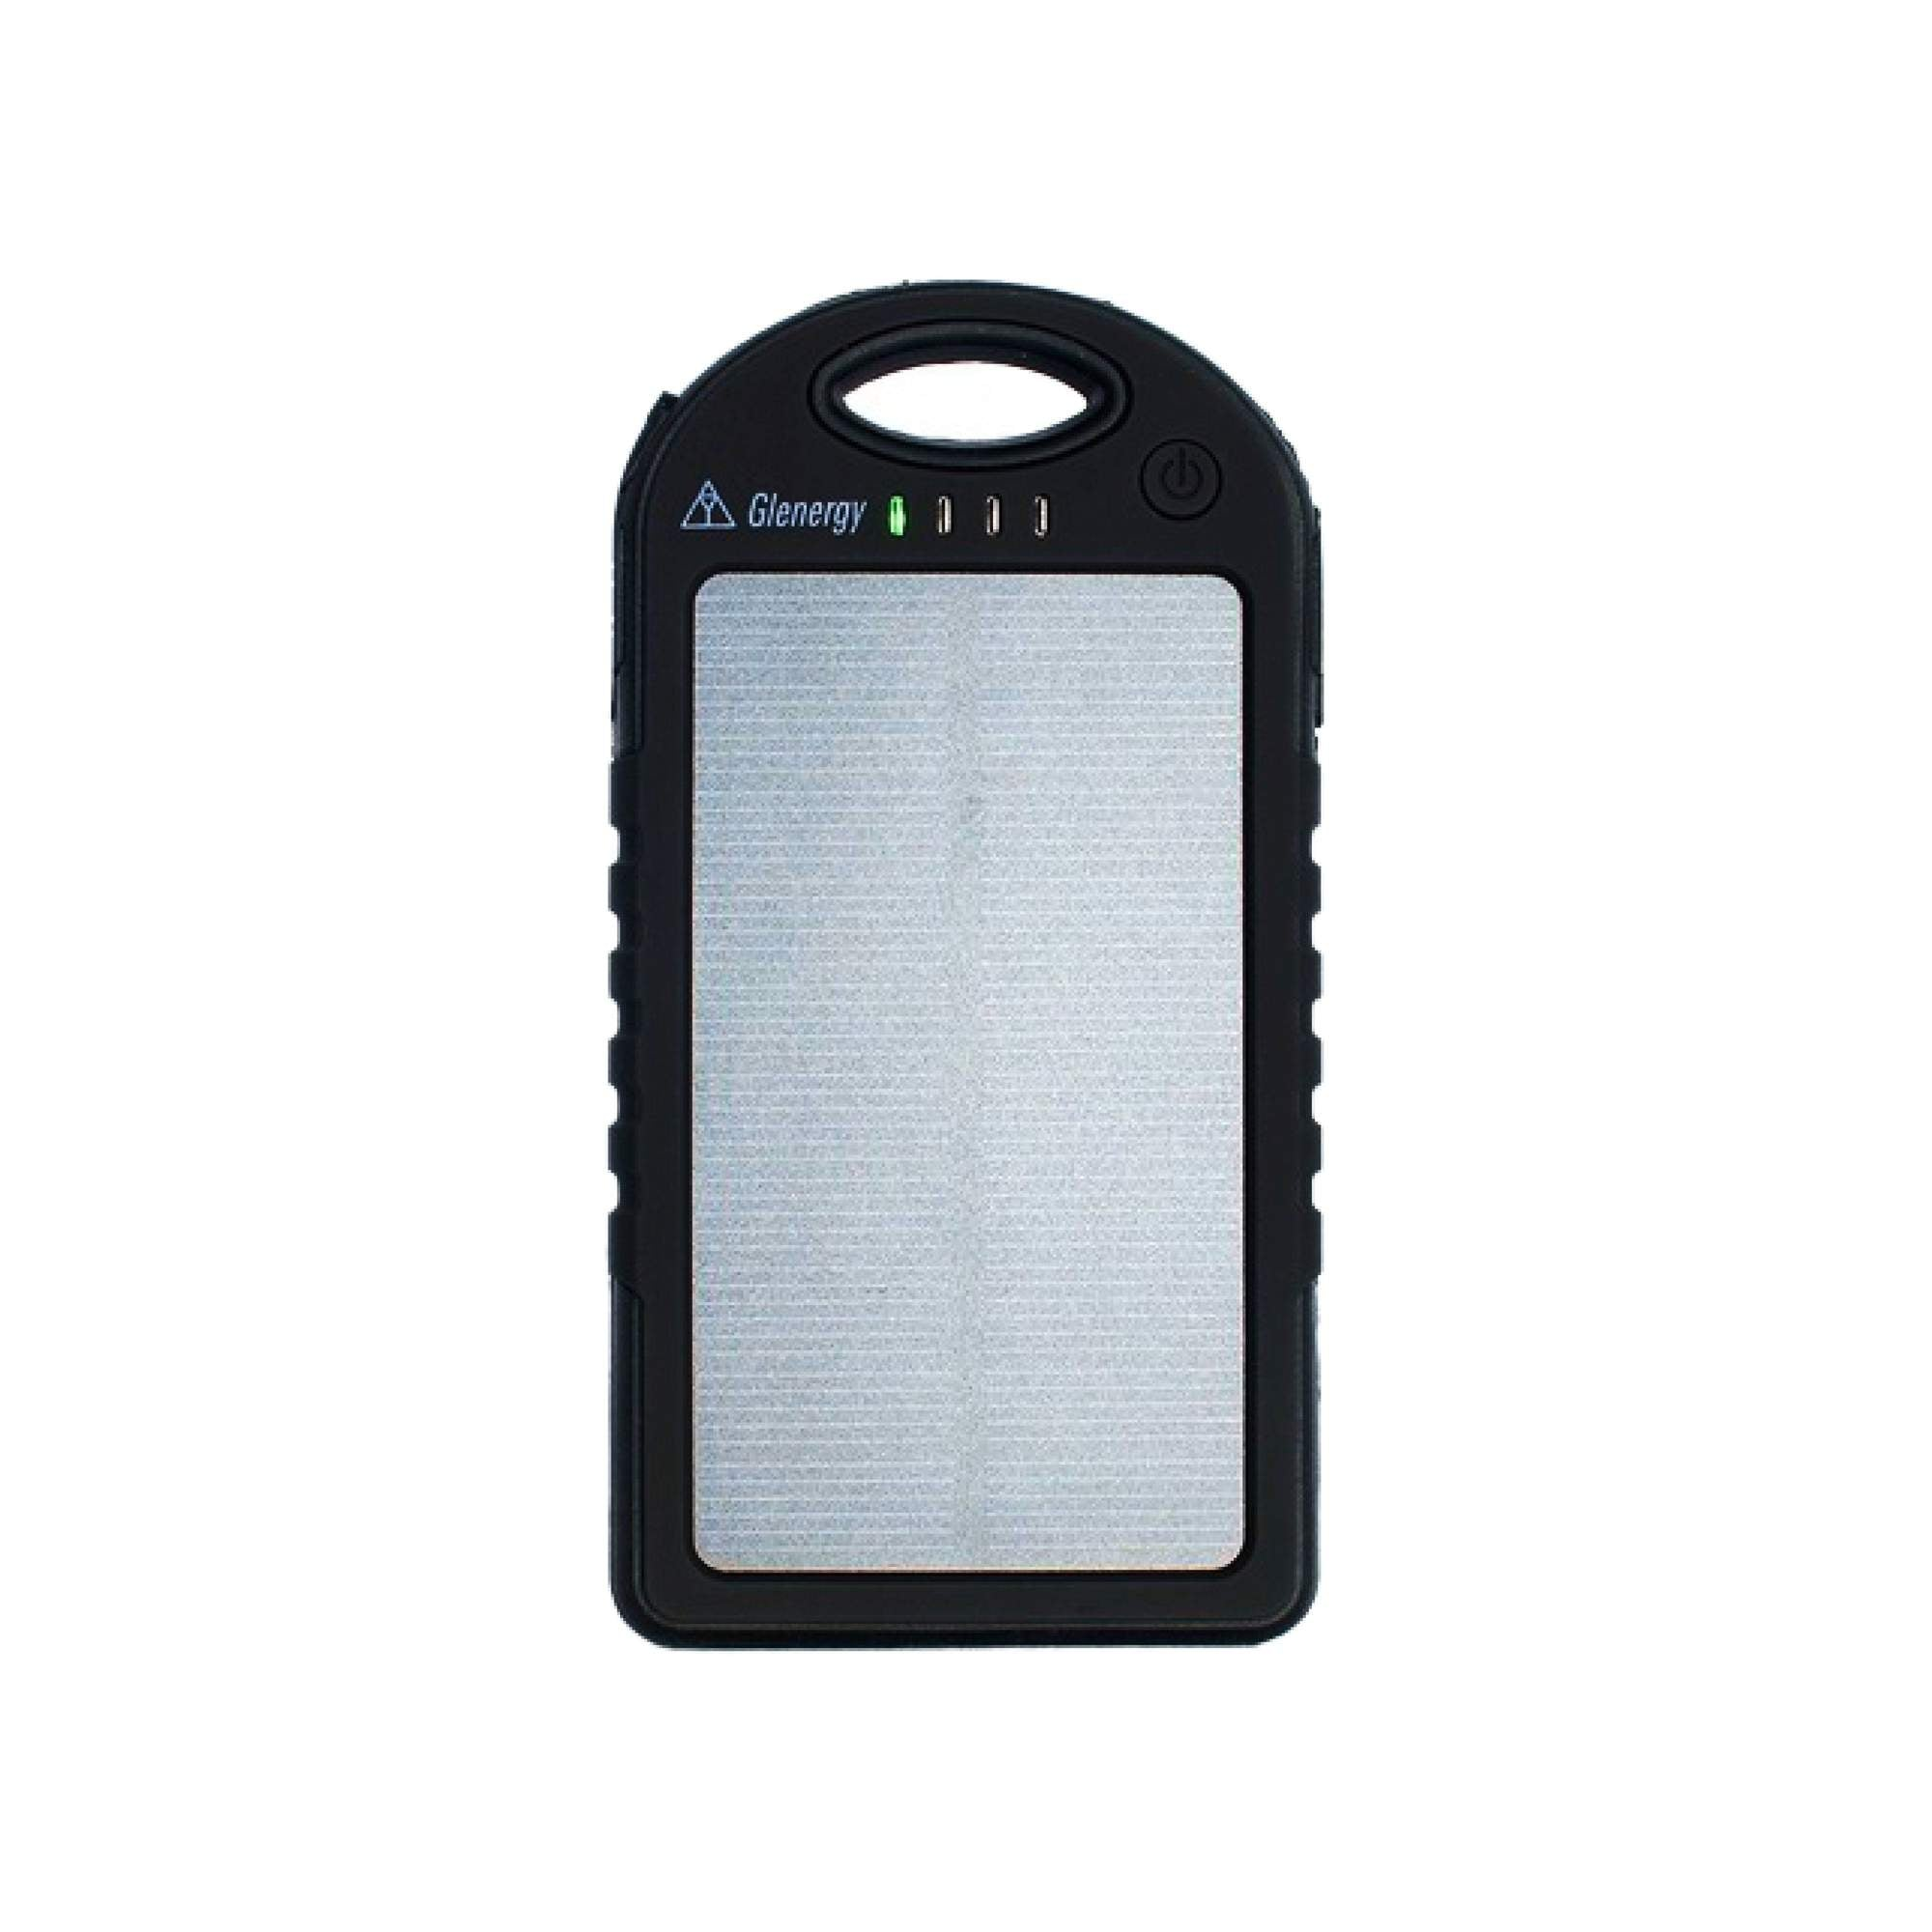 solar powered phone chargers